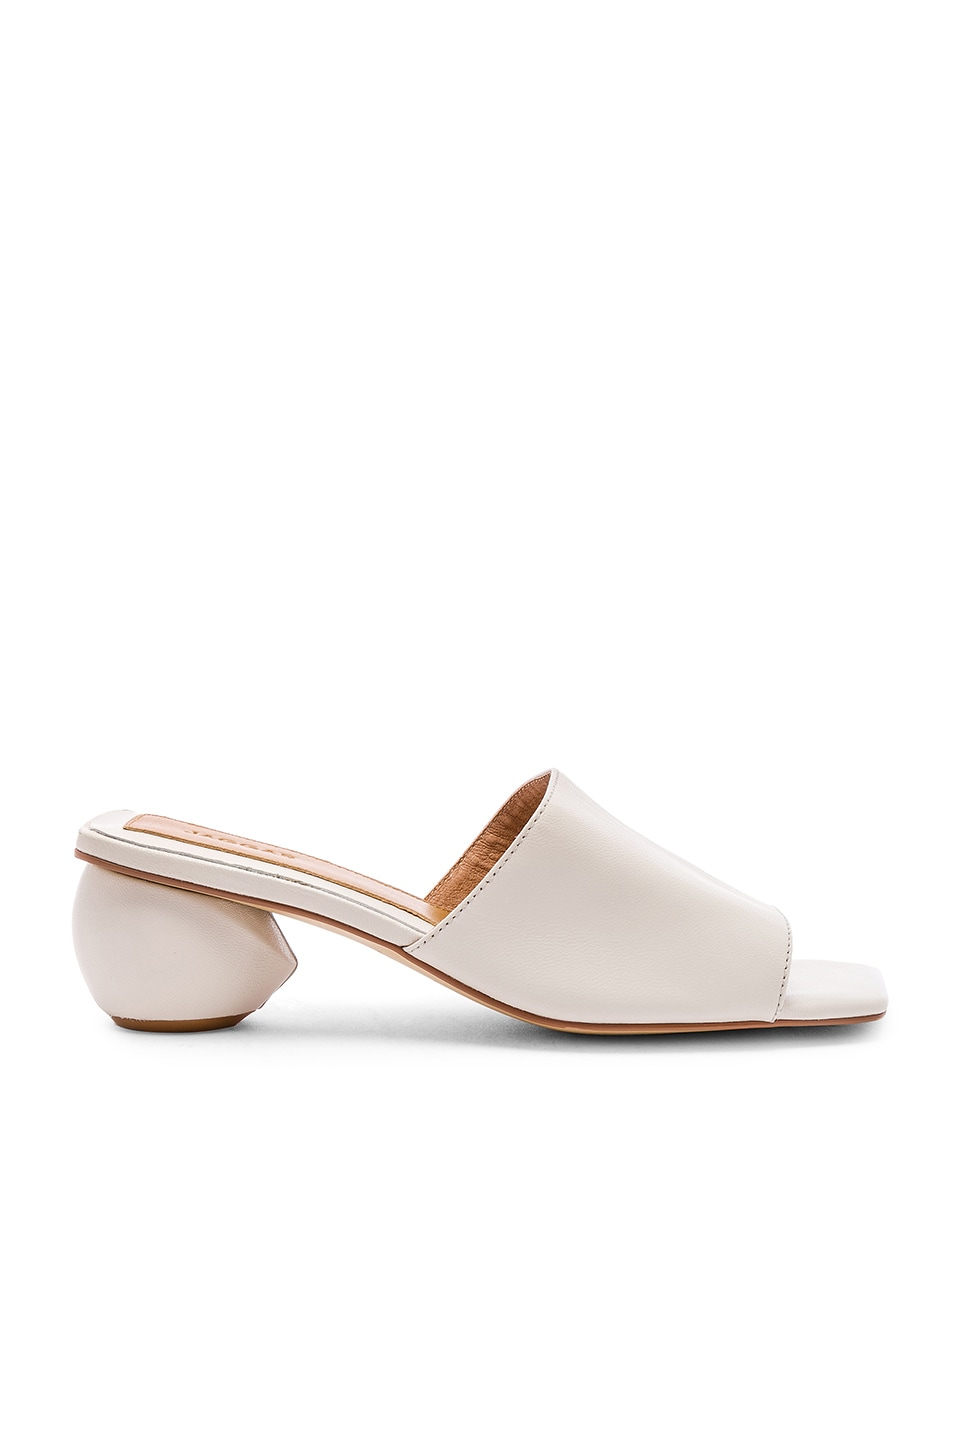 JAGGAR Orb Heel in Cream